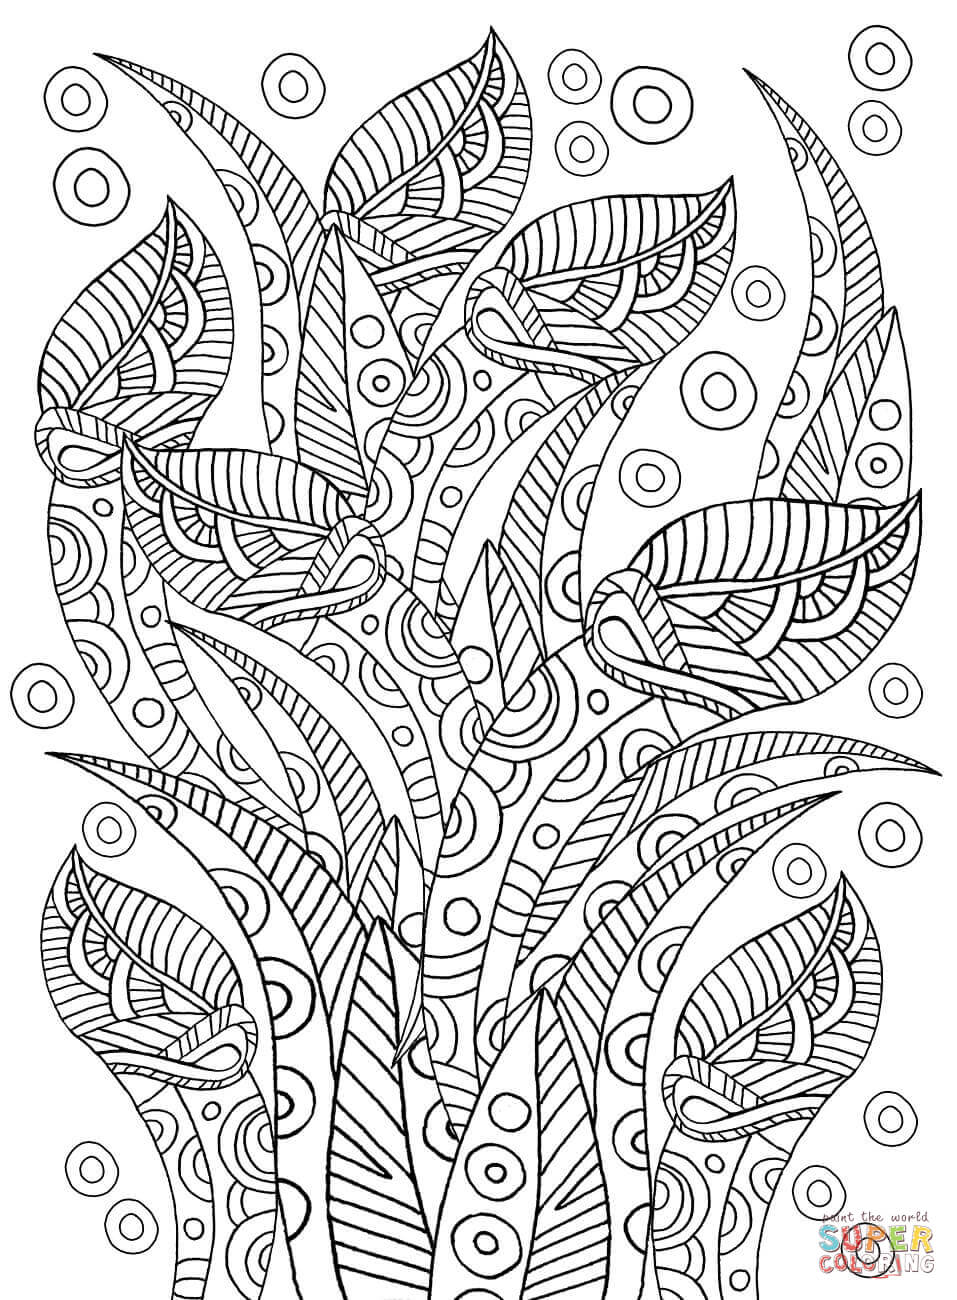 coloring patterns pattern coloring pages best coloring pages for kids patterns coloring 1 1